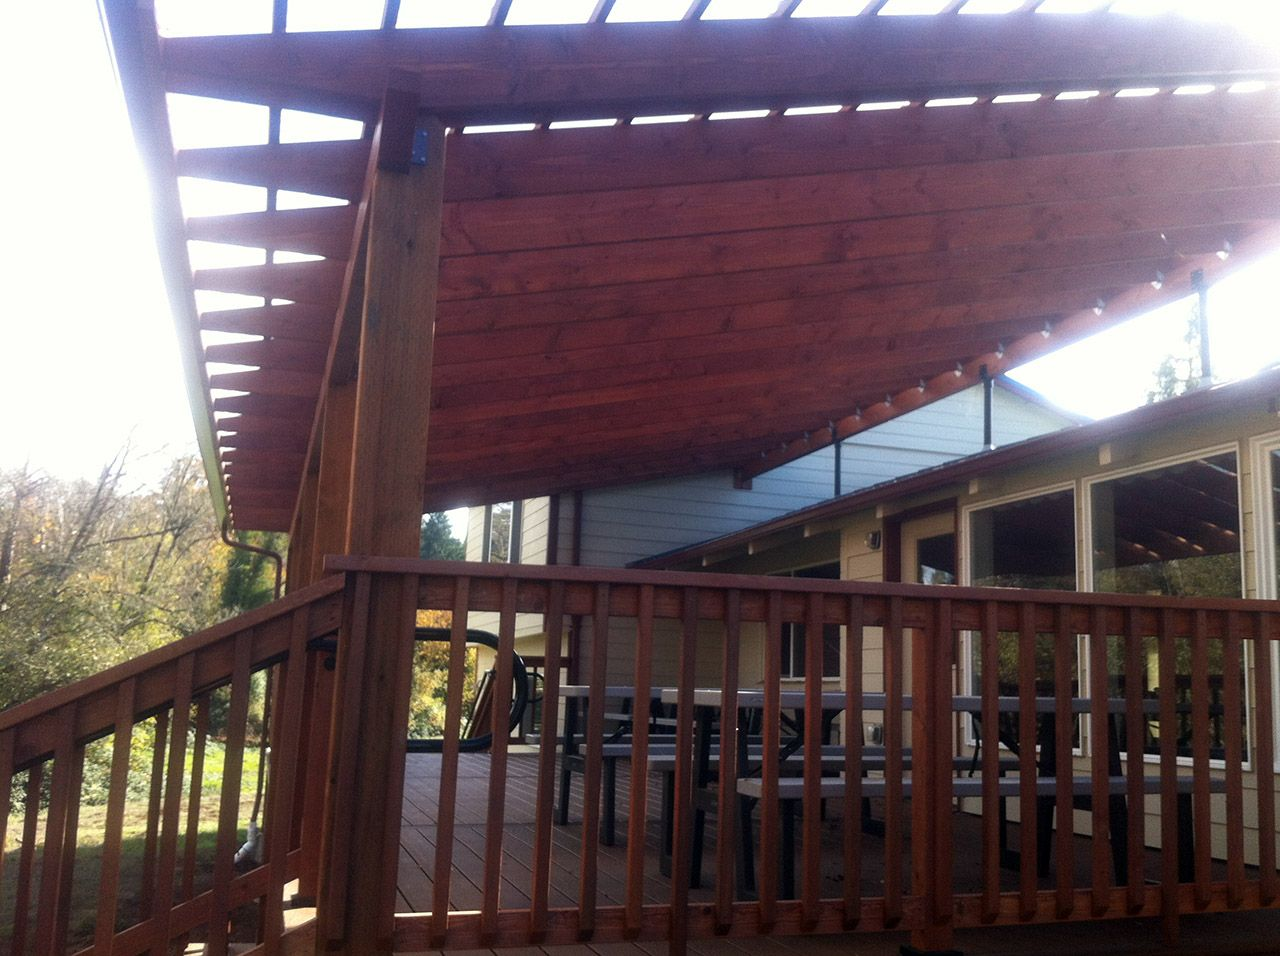 Gallery SkyLift Roof Riser Hardware Pergola, Deck with